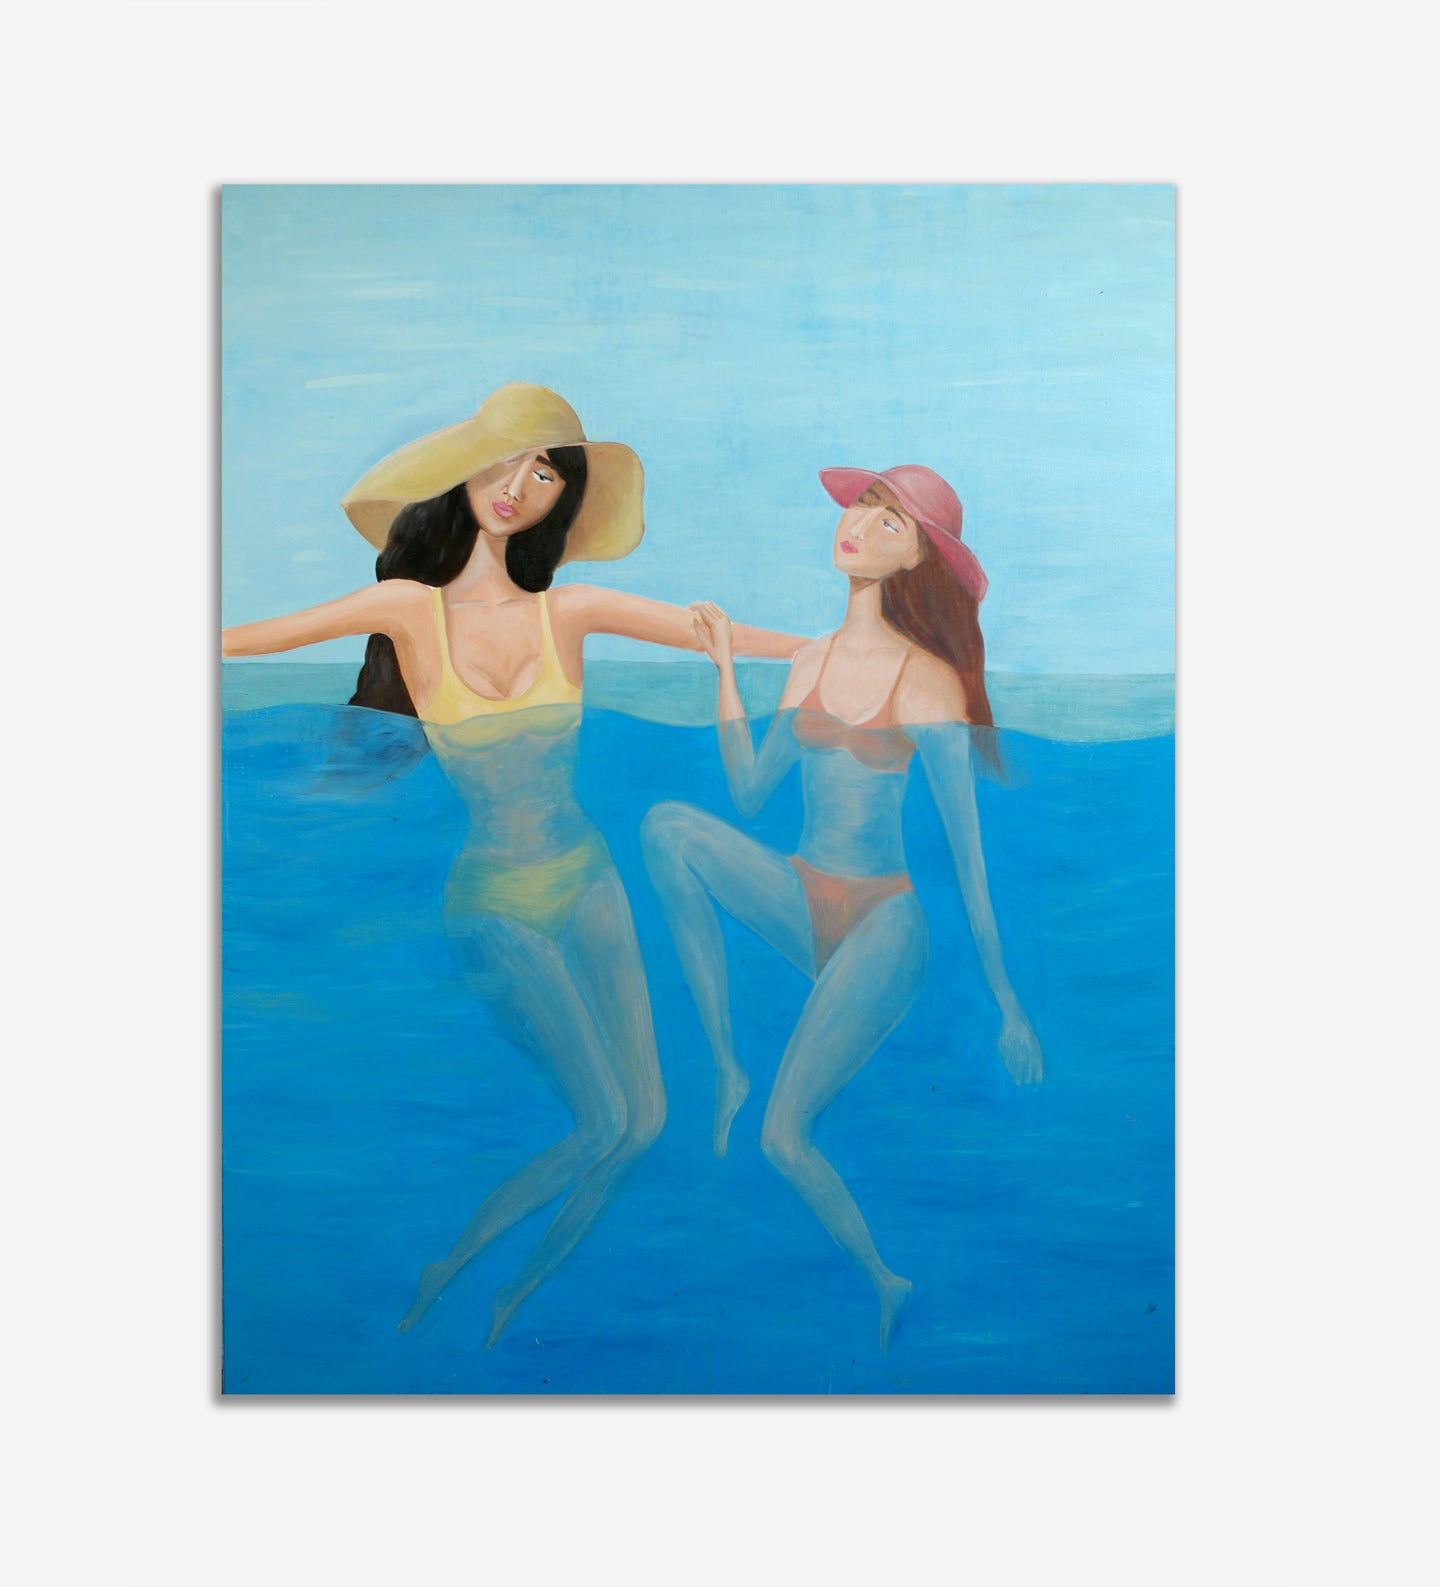 Ocean girls - Original Painting XXL